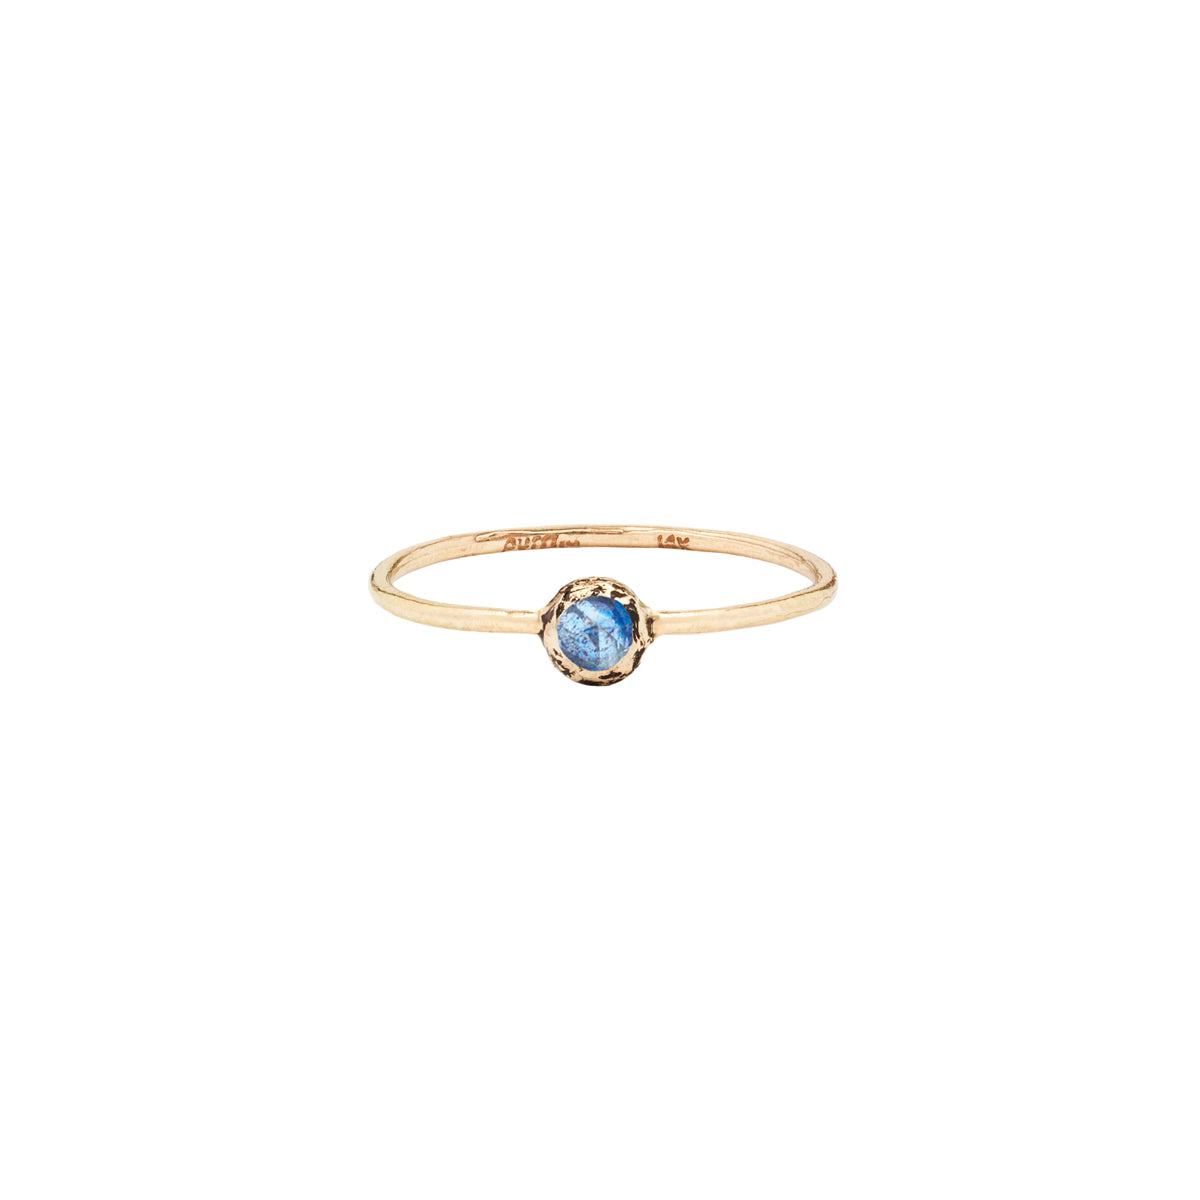 Sapphire Gold Ring14k Gold Ring wSapphire